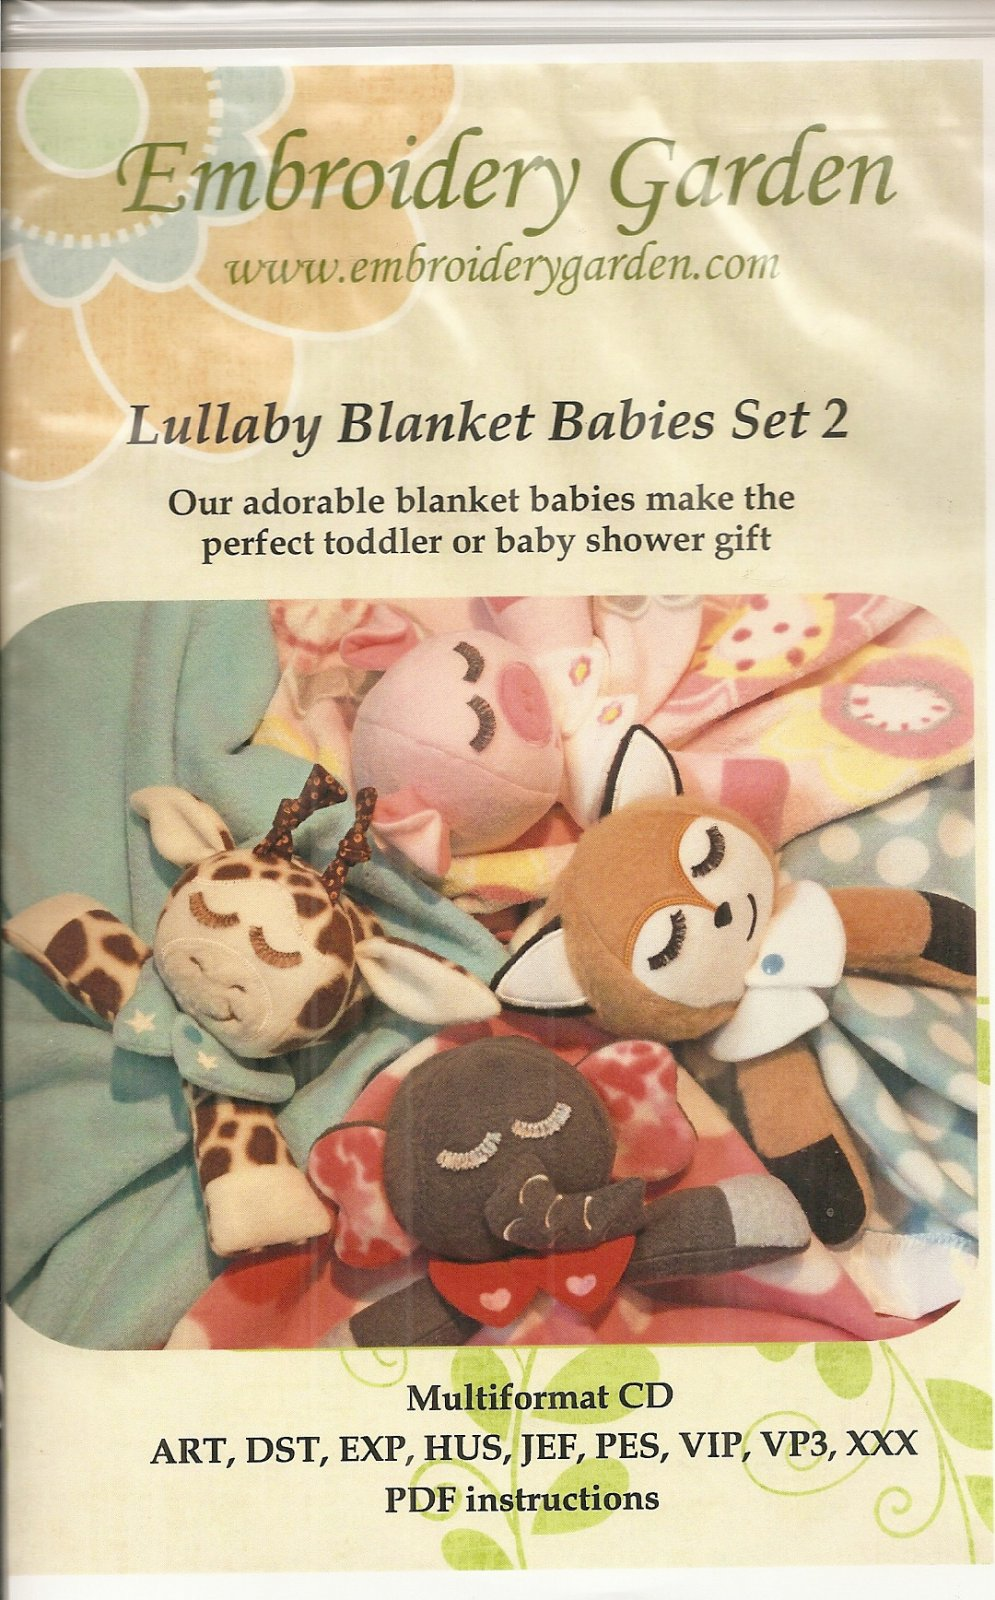 Lullaby Blanket Babies Set 2